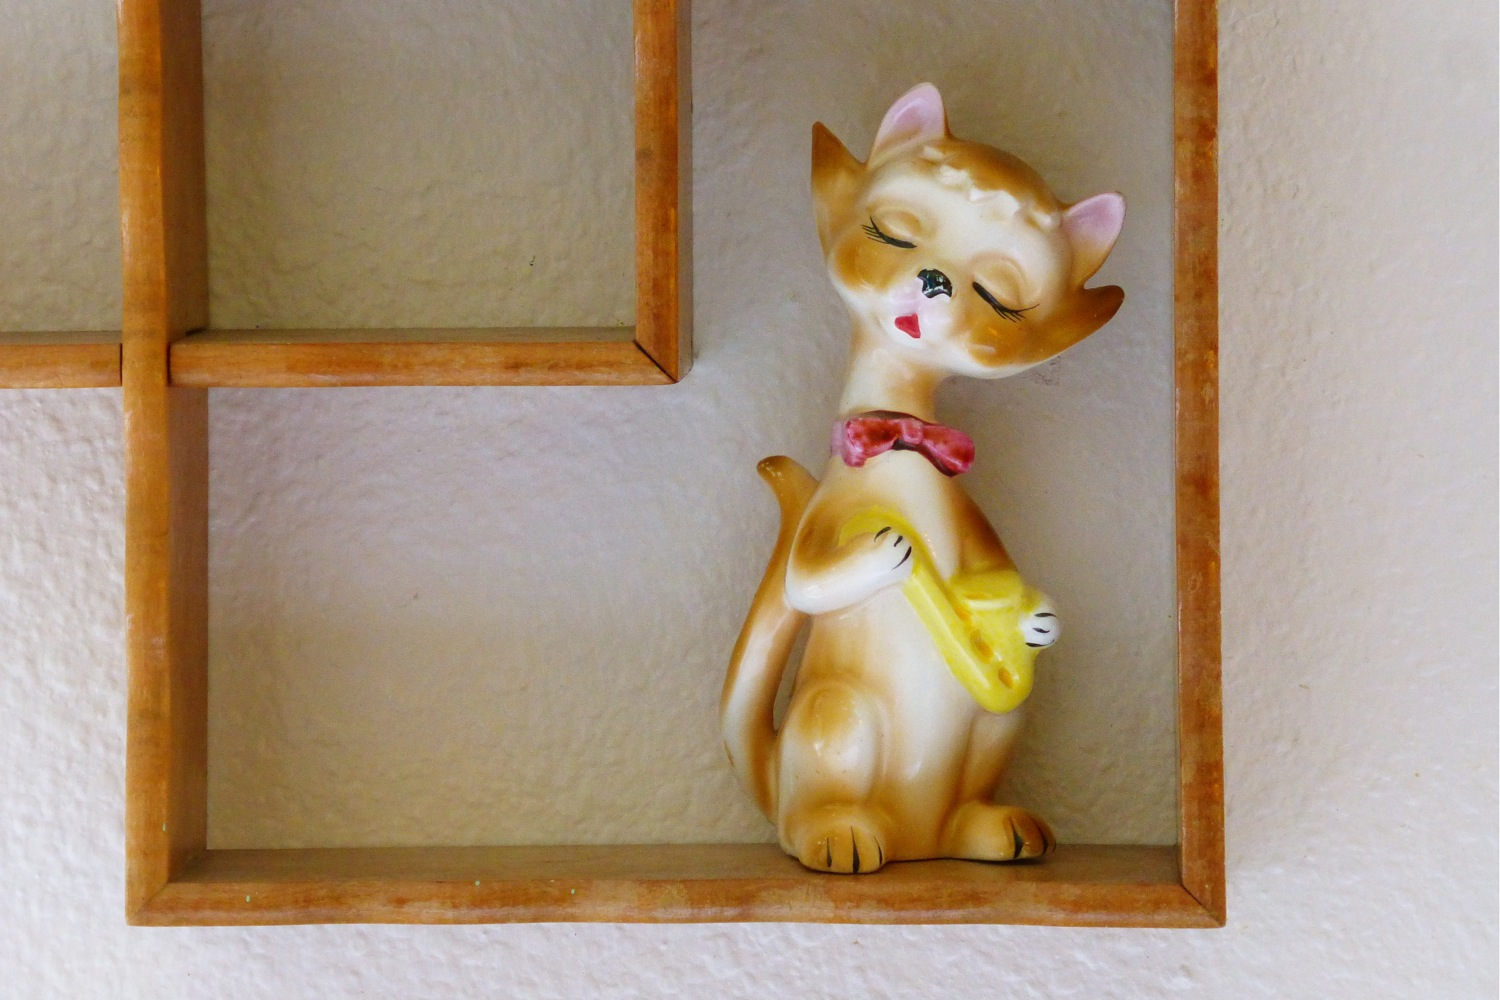 vintage Japanese ceramic jazz cat, vintage Japanese ceramic cat playing saxophone, made in Japan, Japanese ceramic cat